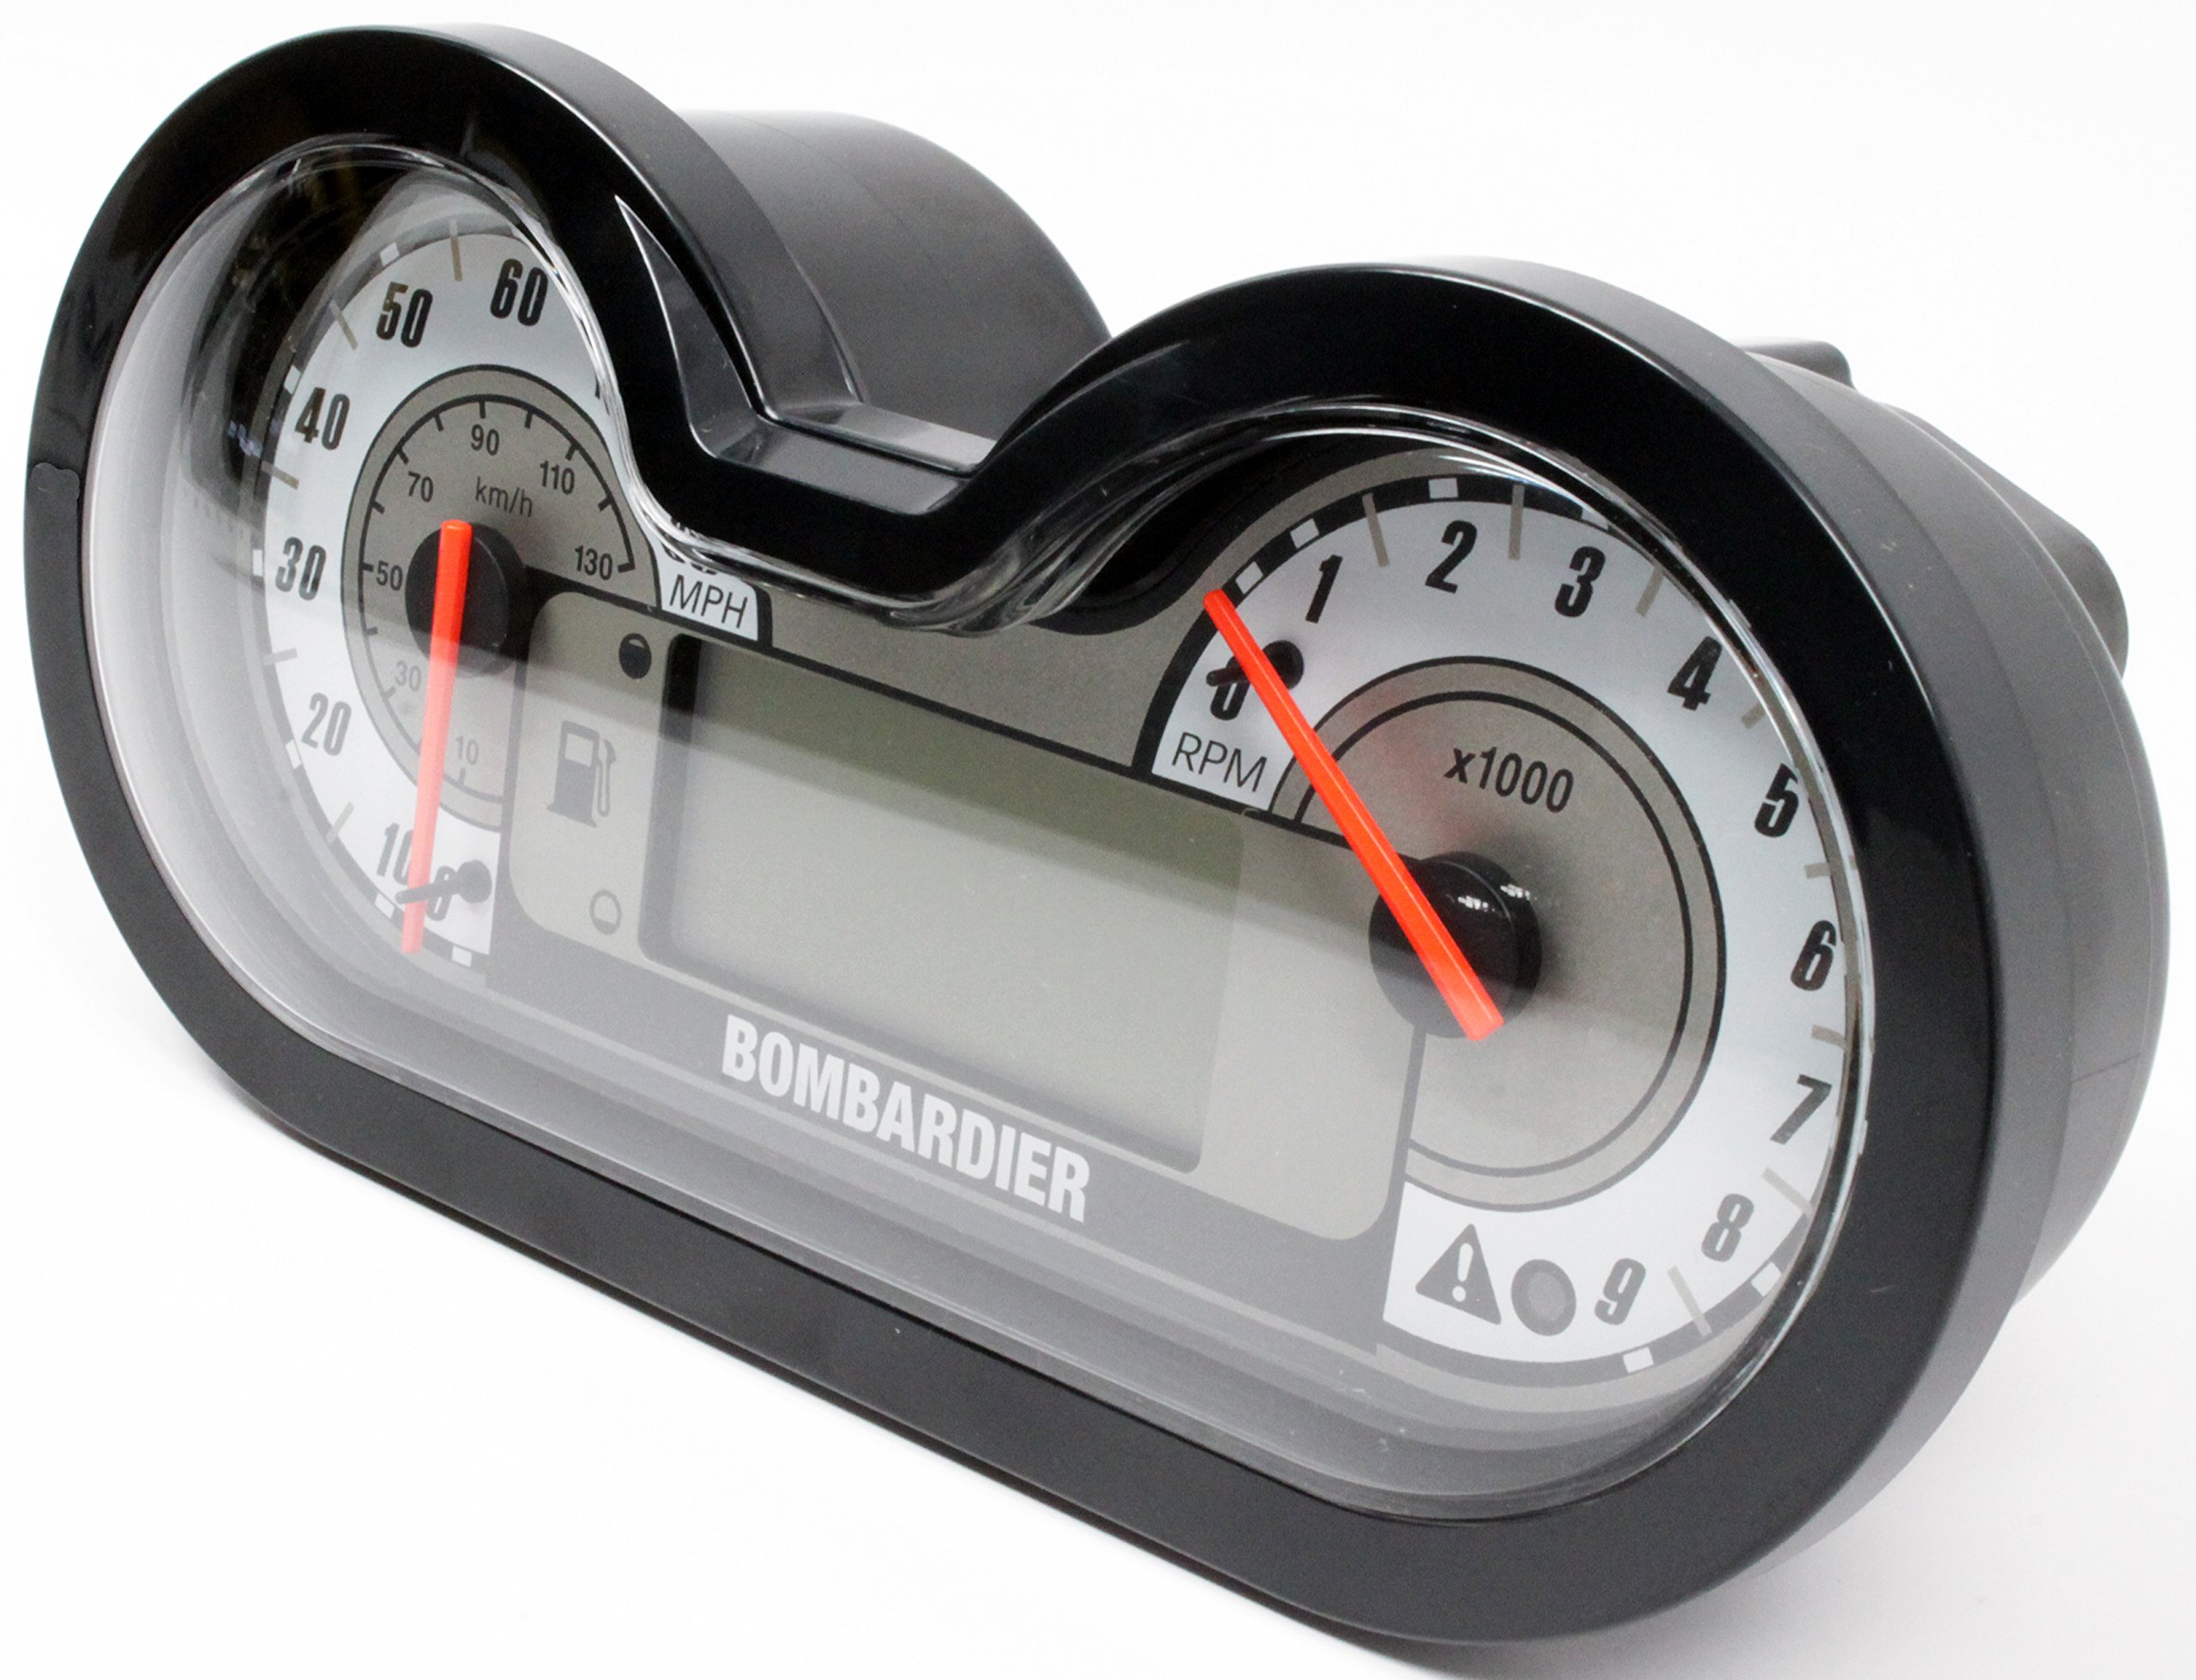 Sea Doo 2002 2003 2004 GTX Wake 4-TEC LCD Digital Speedometer Gauge 278001959 New OEM by Sea-Doo